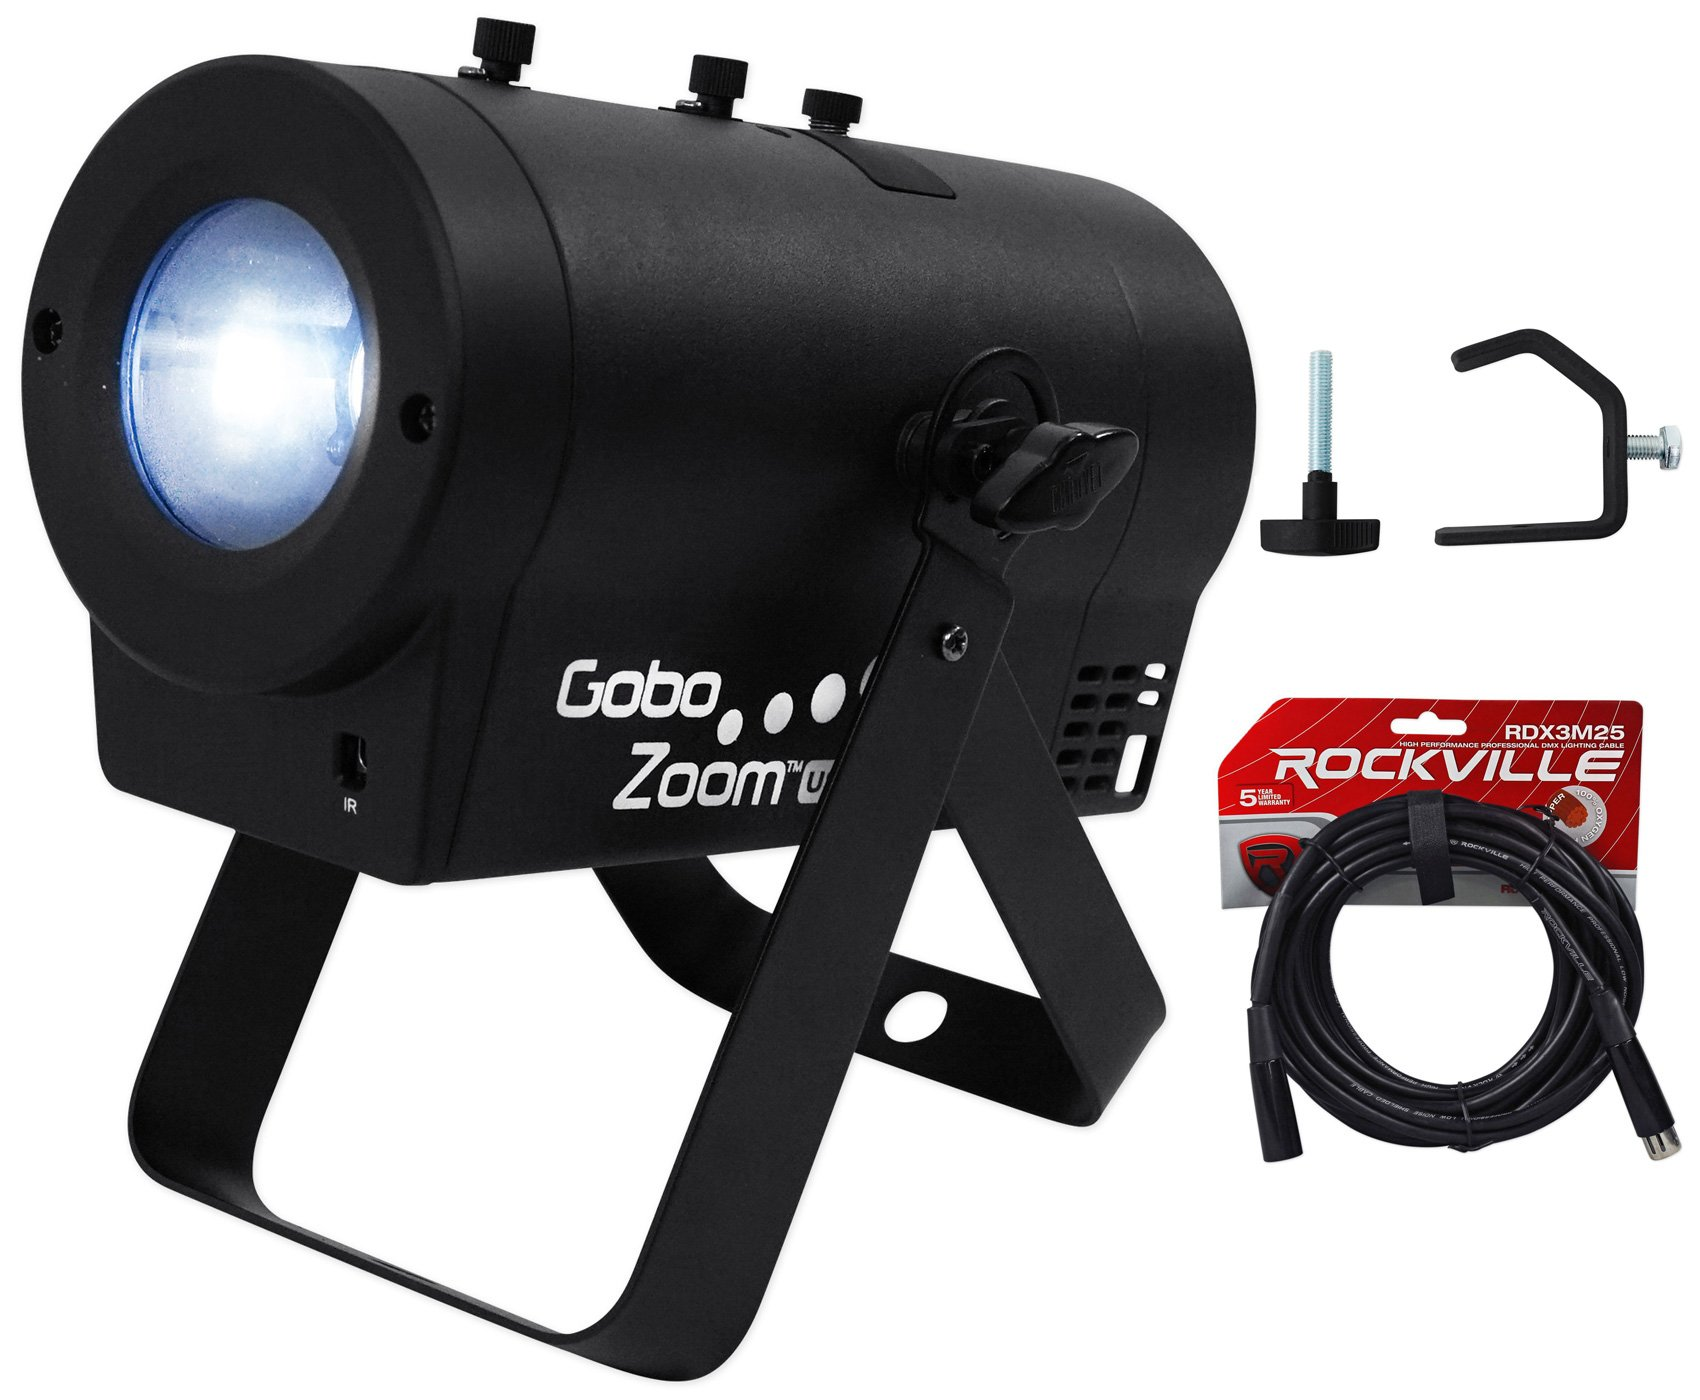 Chauvet DJ Gobo Zoom USB Custom Gobo Projector Light W/10 Gobos+Clamp+DMX Cable